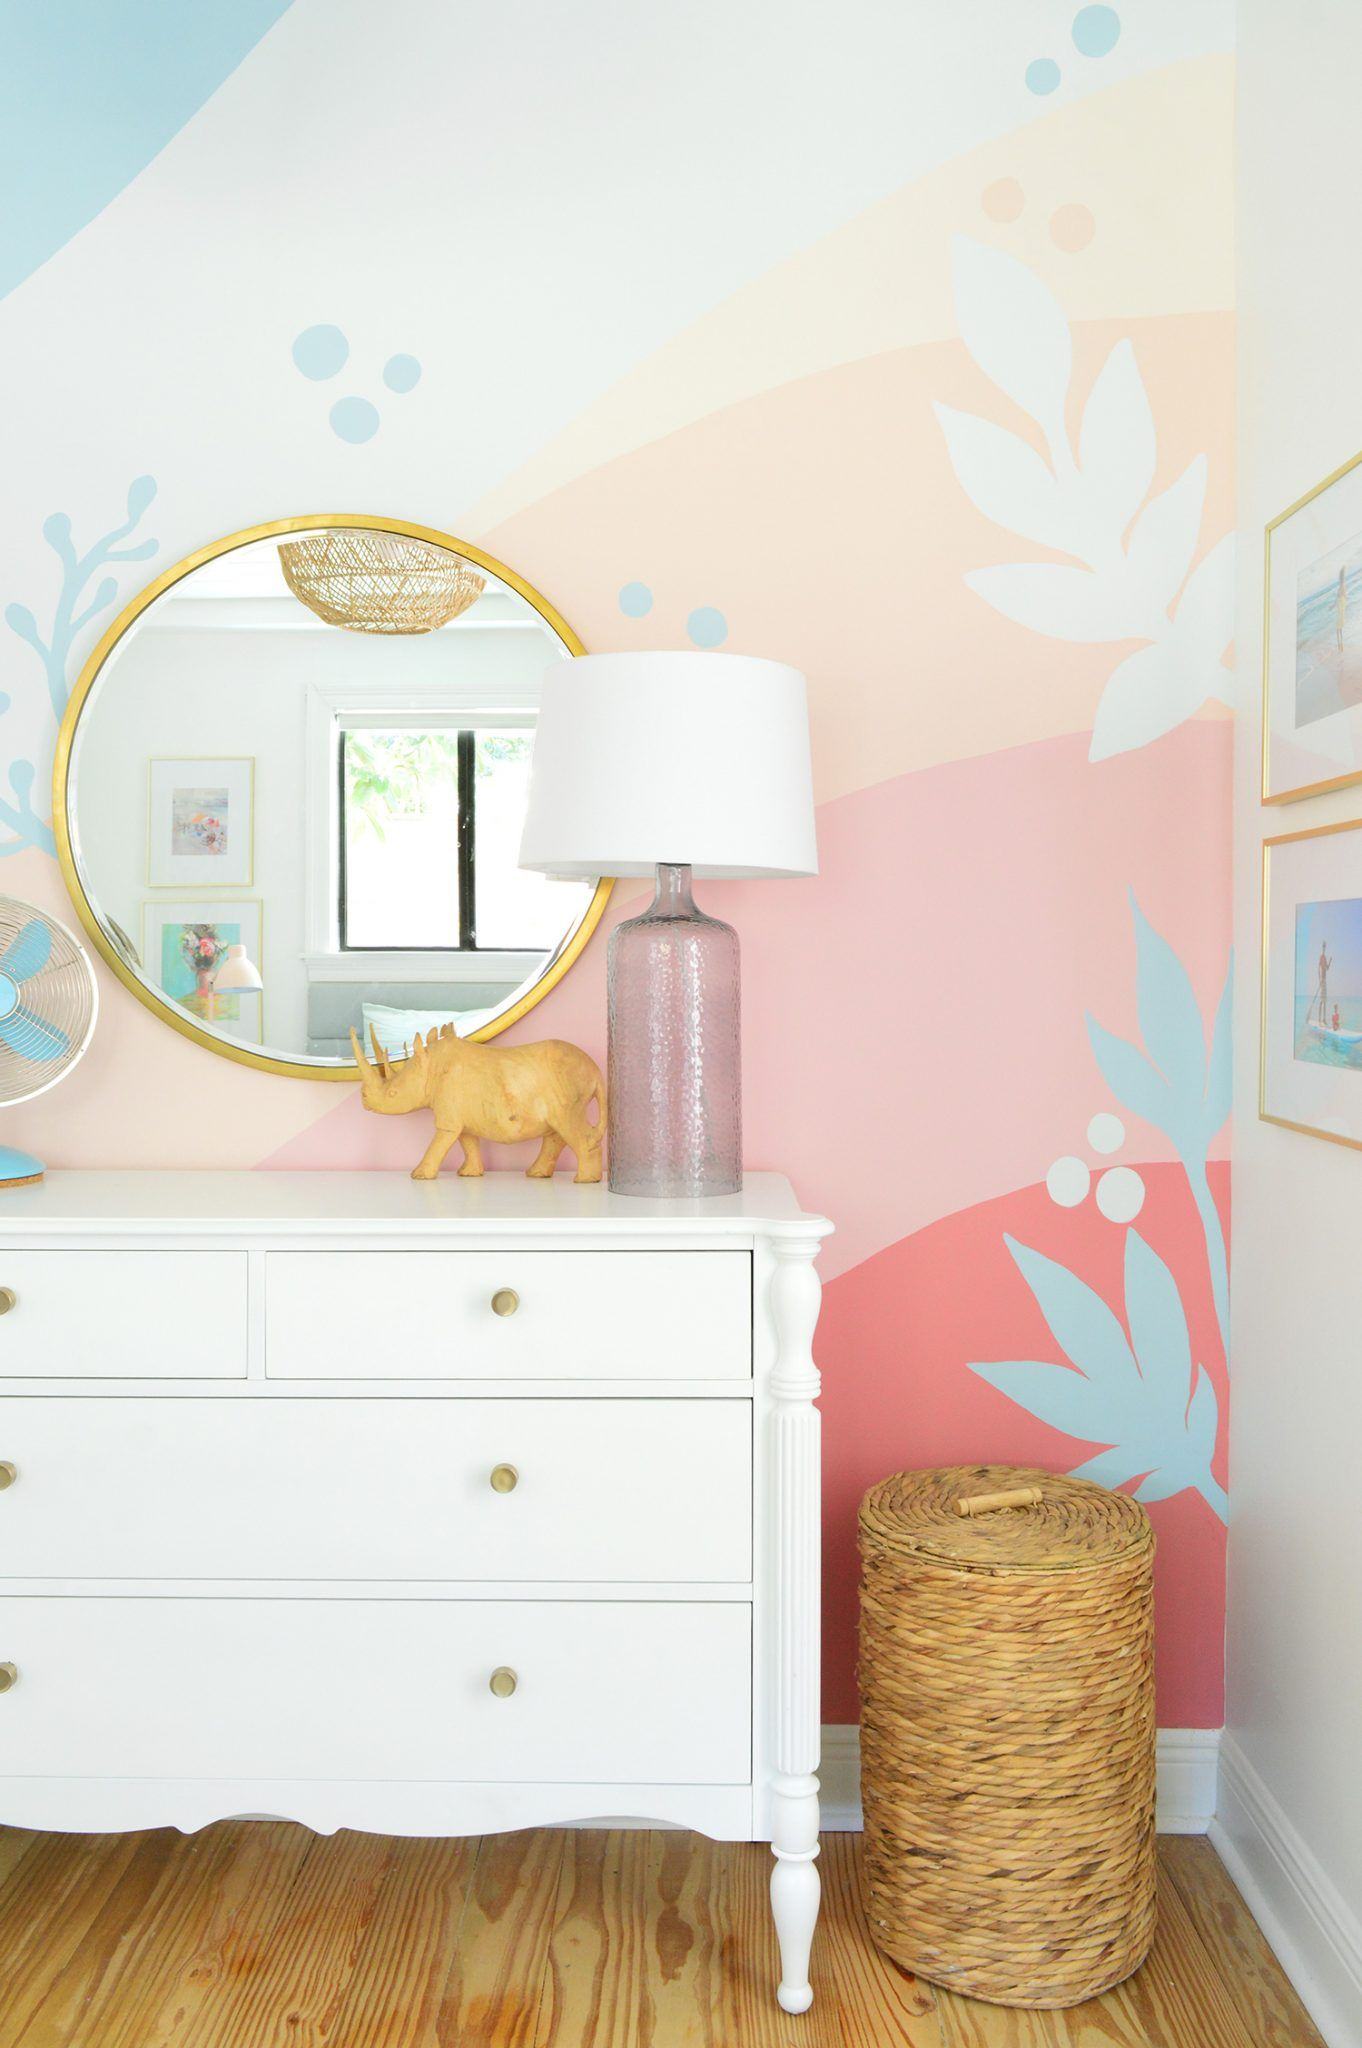 How We Painted A Colorful Abstract Wall Mural Updated Young House Love Girl Bedroom Walls Kids Room Murals Bedroom Wall Colors